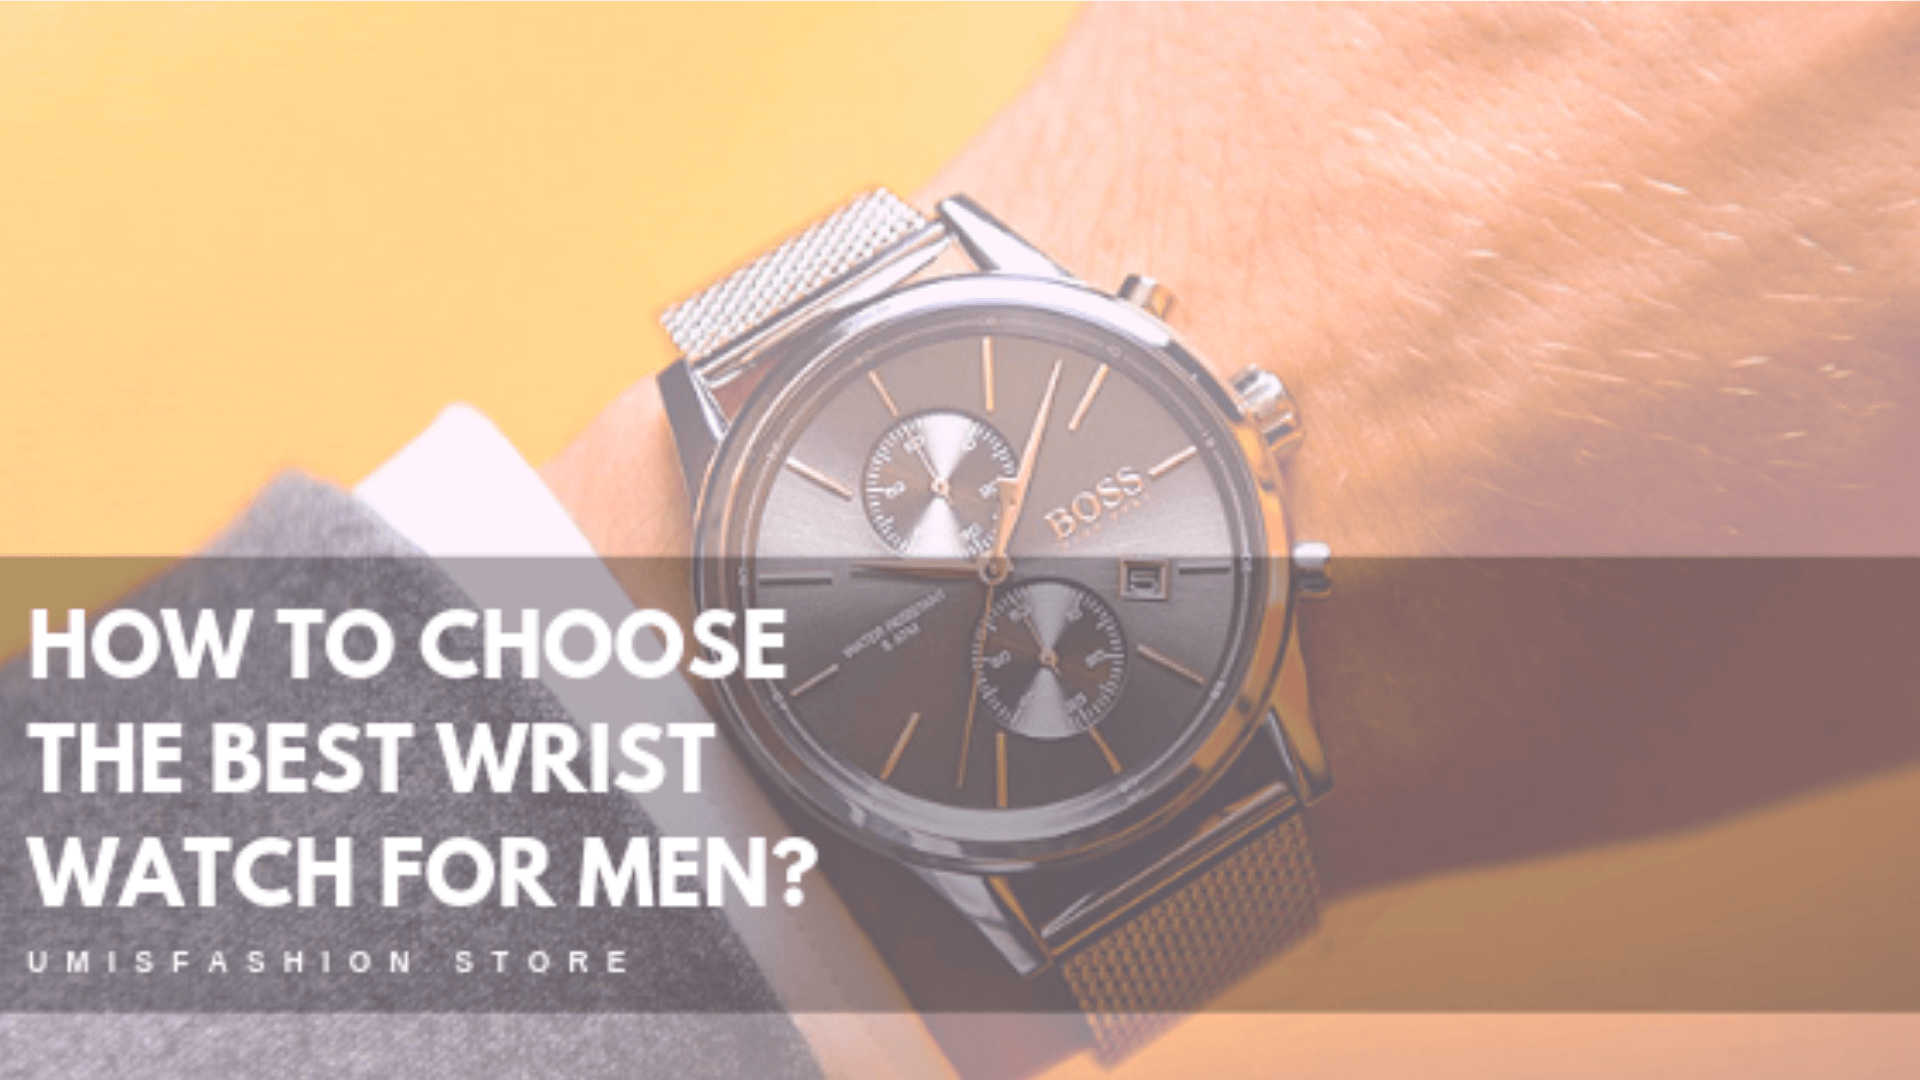 How to Choose the Best Wrist Watch for Men?